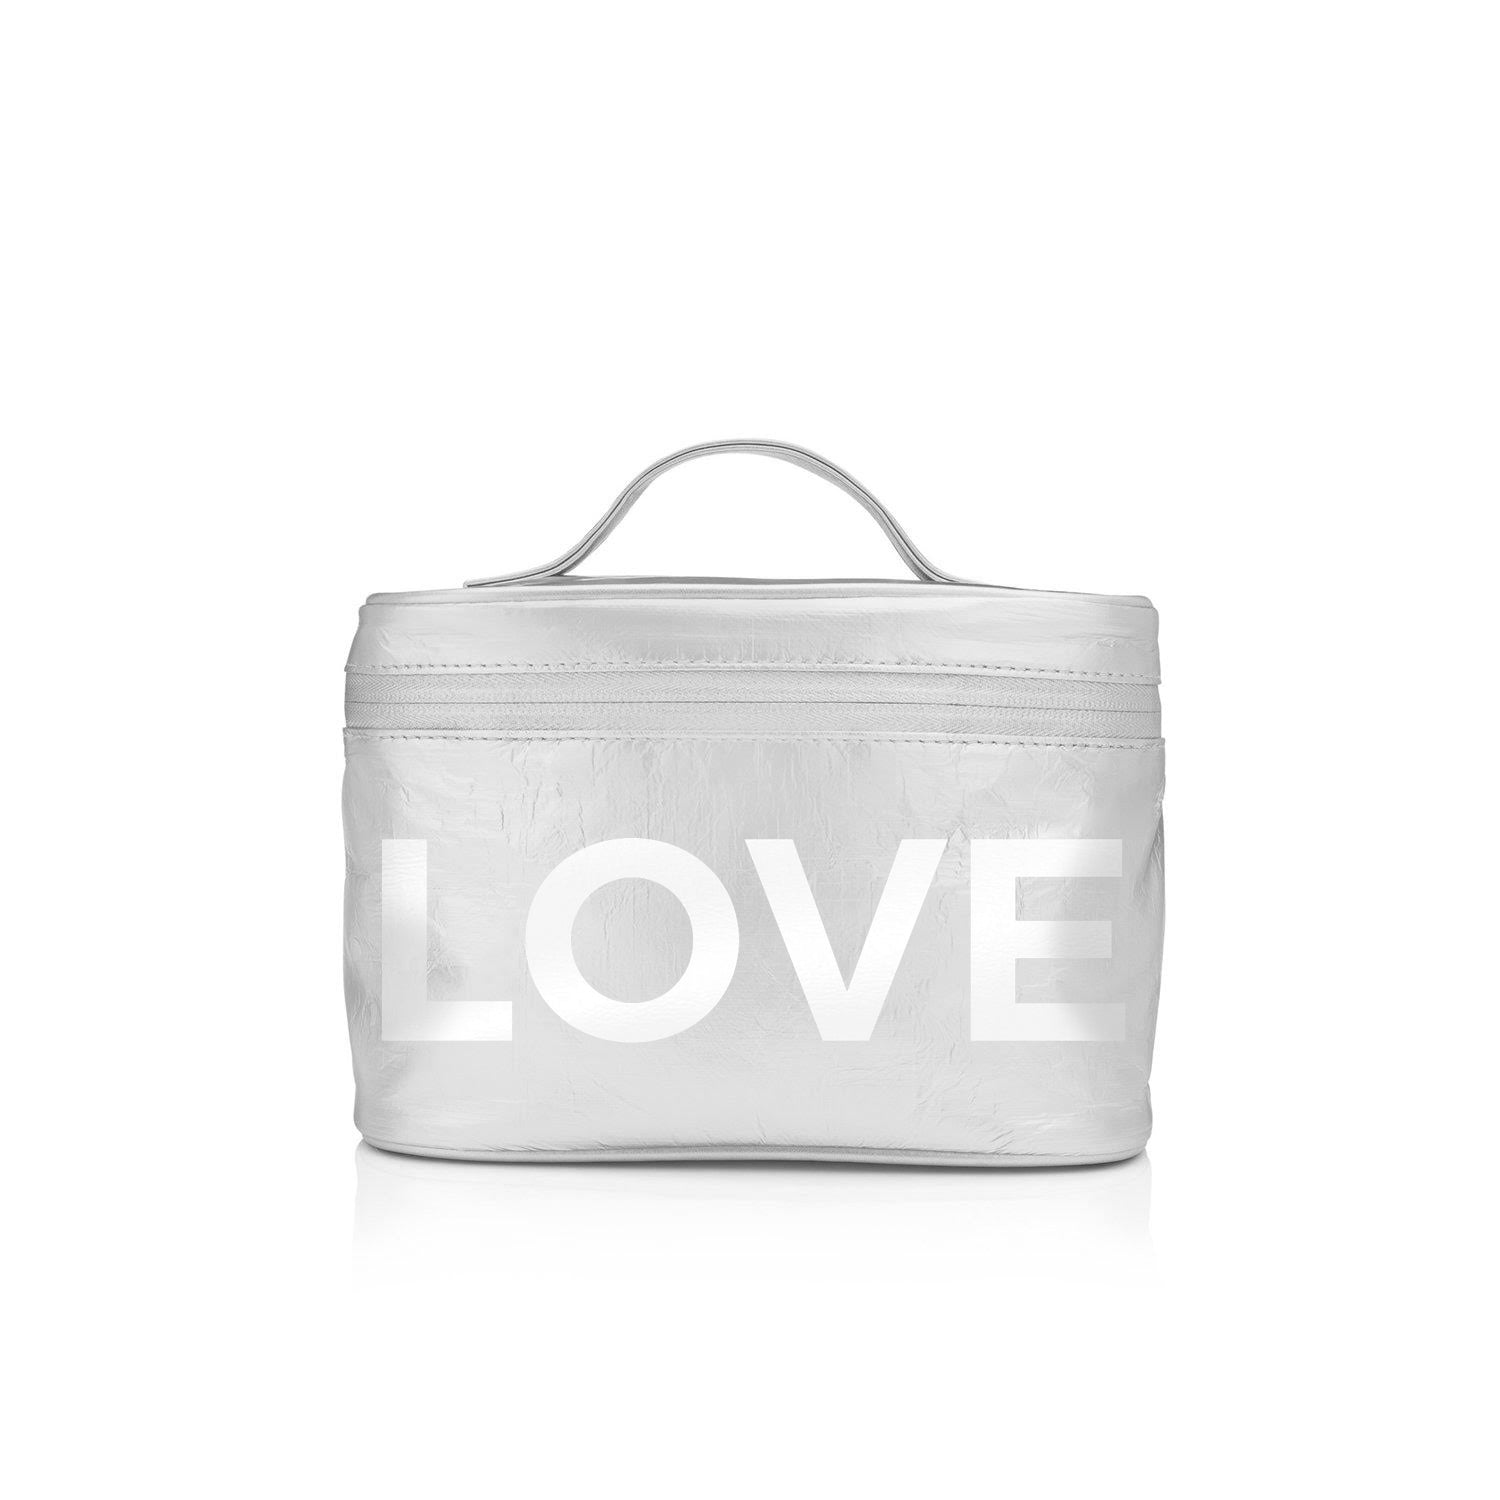 "Cosmetic Case - Lunch Box - Silver with White ""LOVE"""